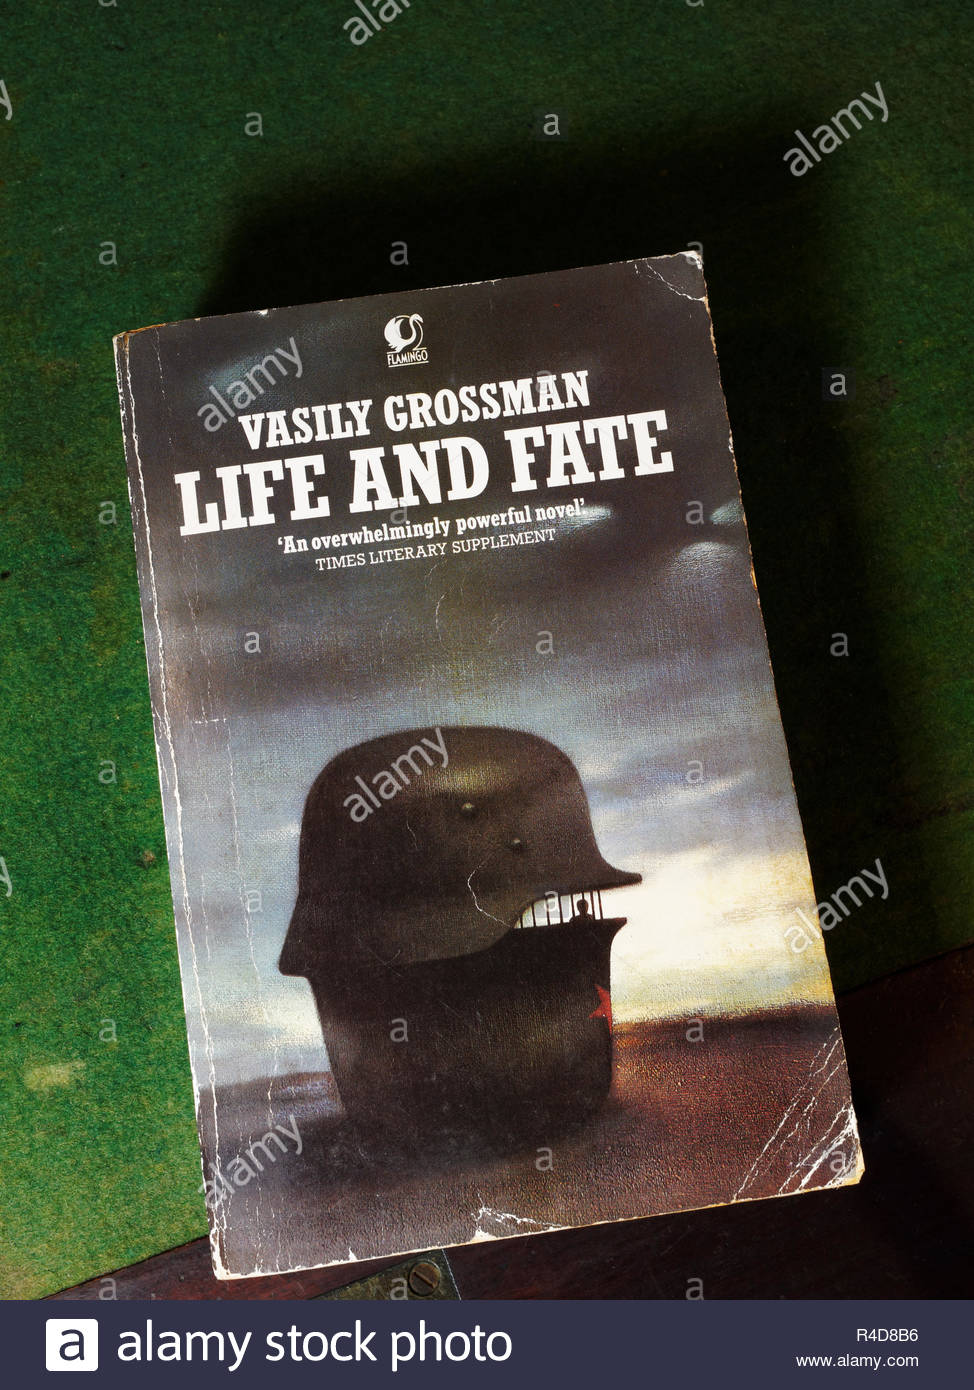 Novel Life and Fate about world war 2 in Russia by Vasily Grossman - Stock Image